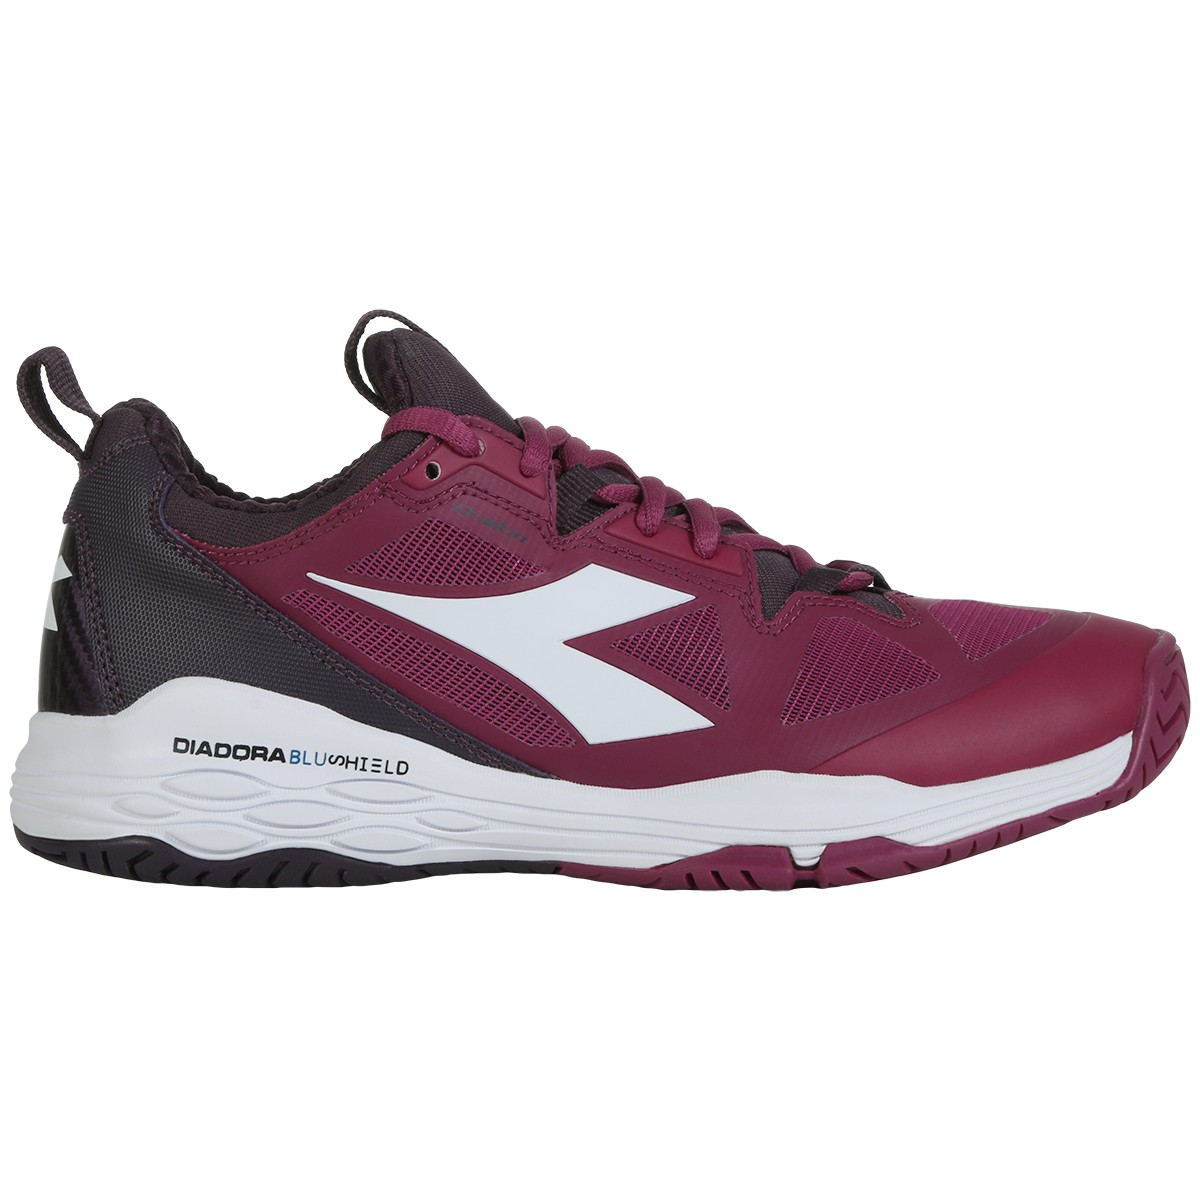 CHAUSSURES DIADORA FEMME SPEED BLUSHIELD FLY 2 TOUTES SURFACES